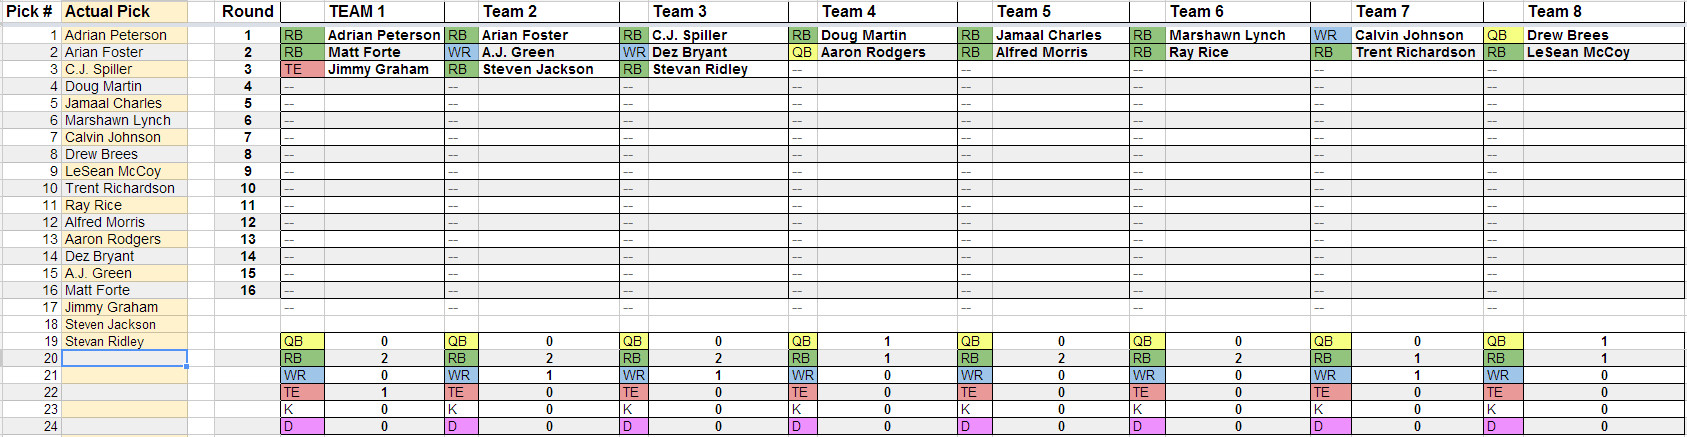 Fantasy Football Draft Spreadsheet Template Microsoft Excel Fantasy Football Template Full Version